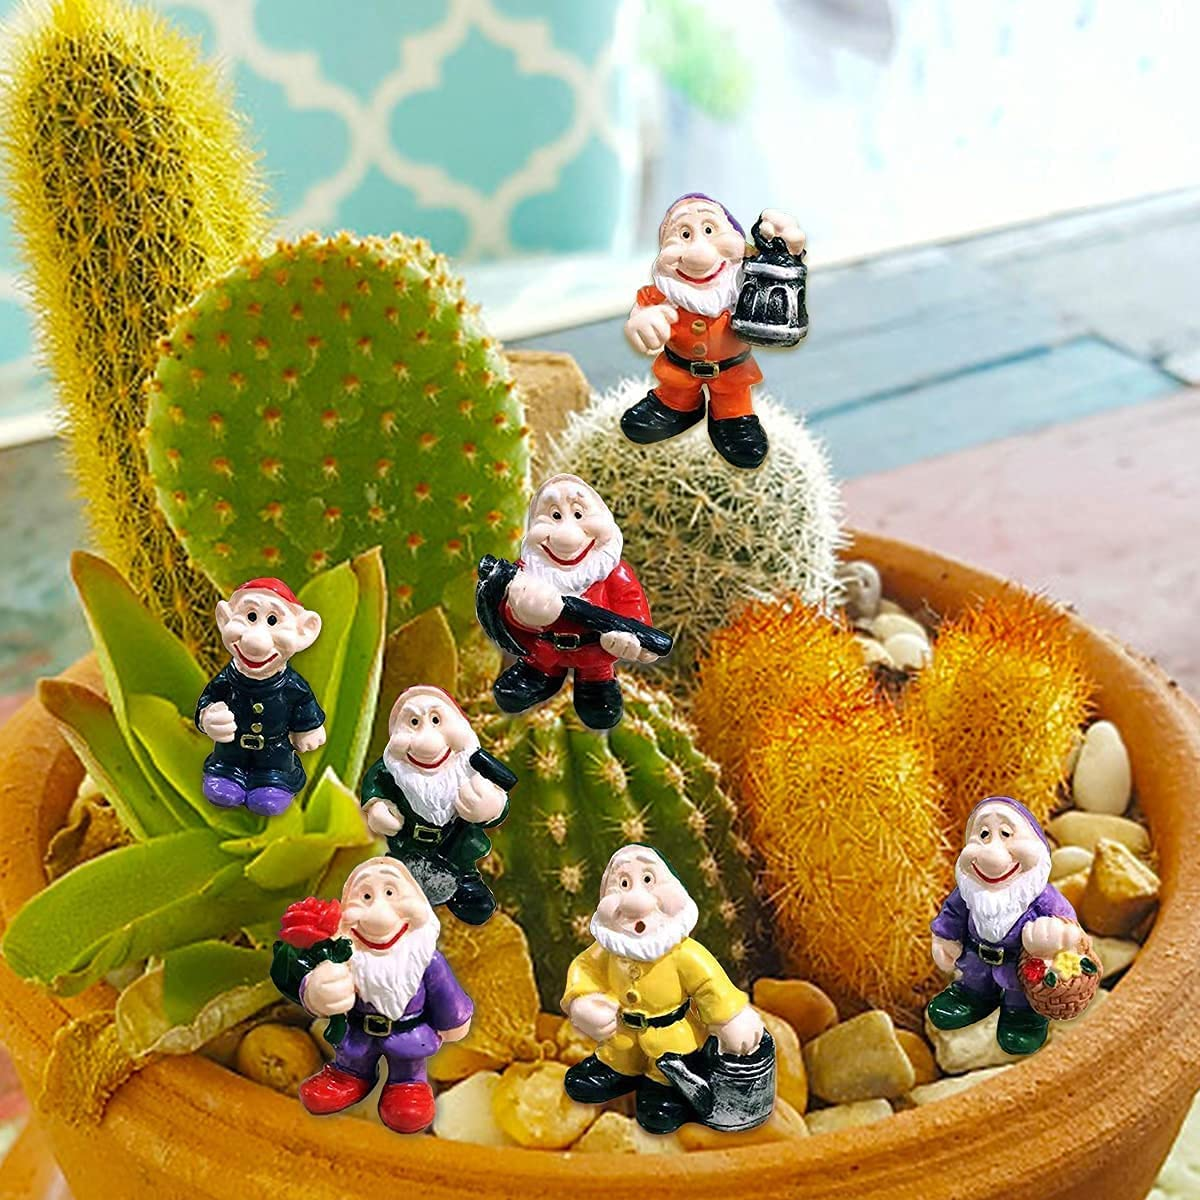 MIBUNG 7pcs Garden Gnomes Statues - Miniature Gnomes Garden Decorations Fairy Garden Accessories for Indoor & Outdoor Decor and Gift, A